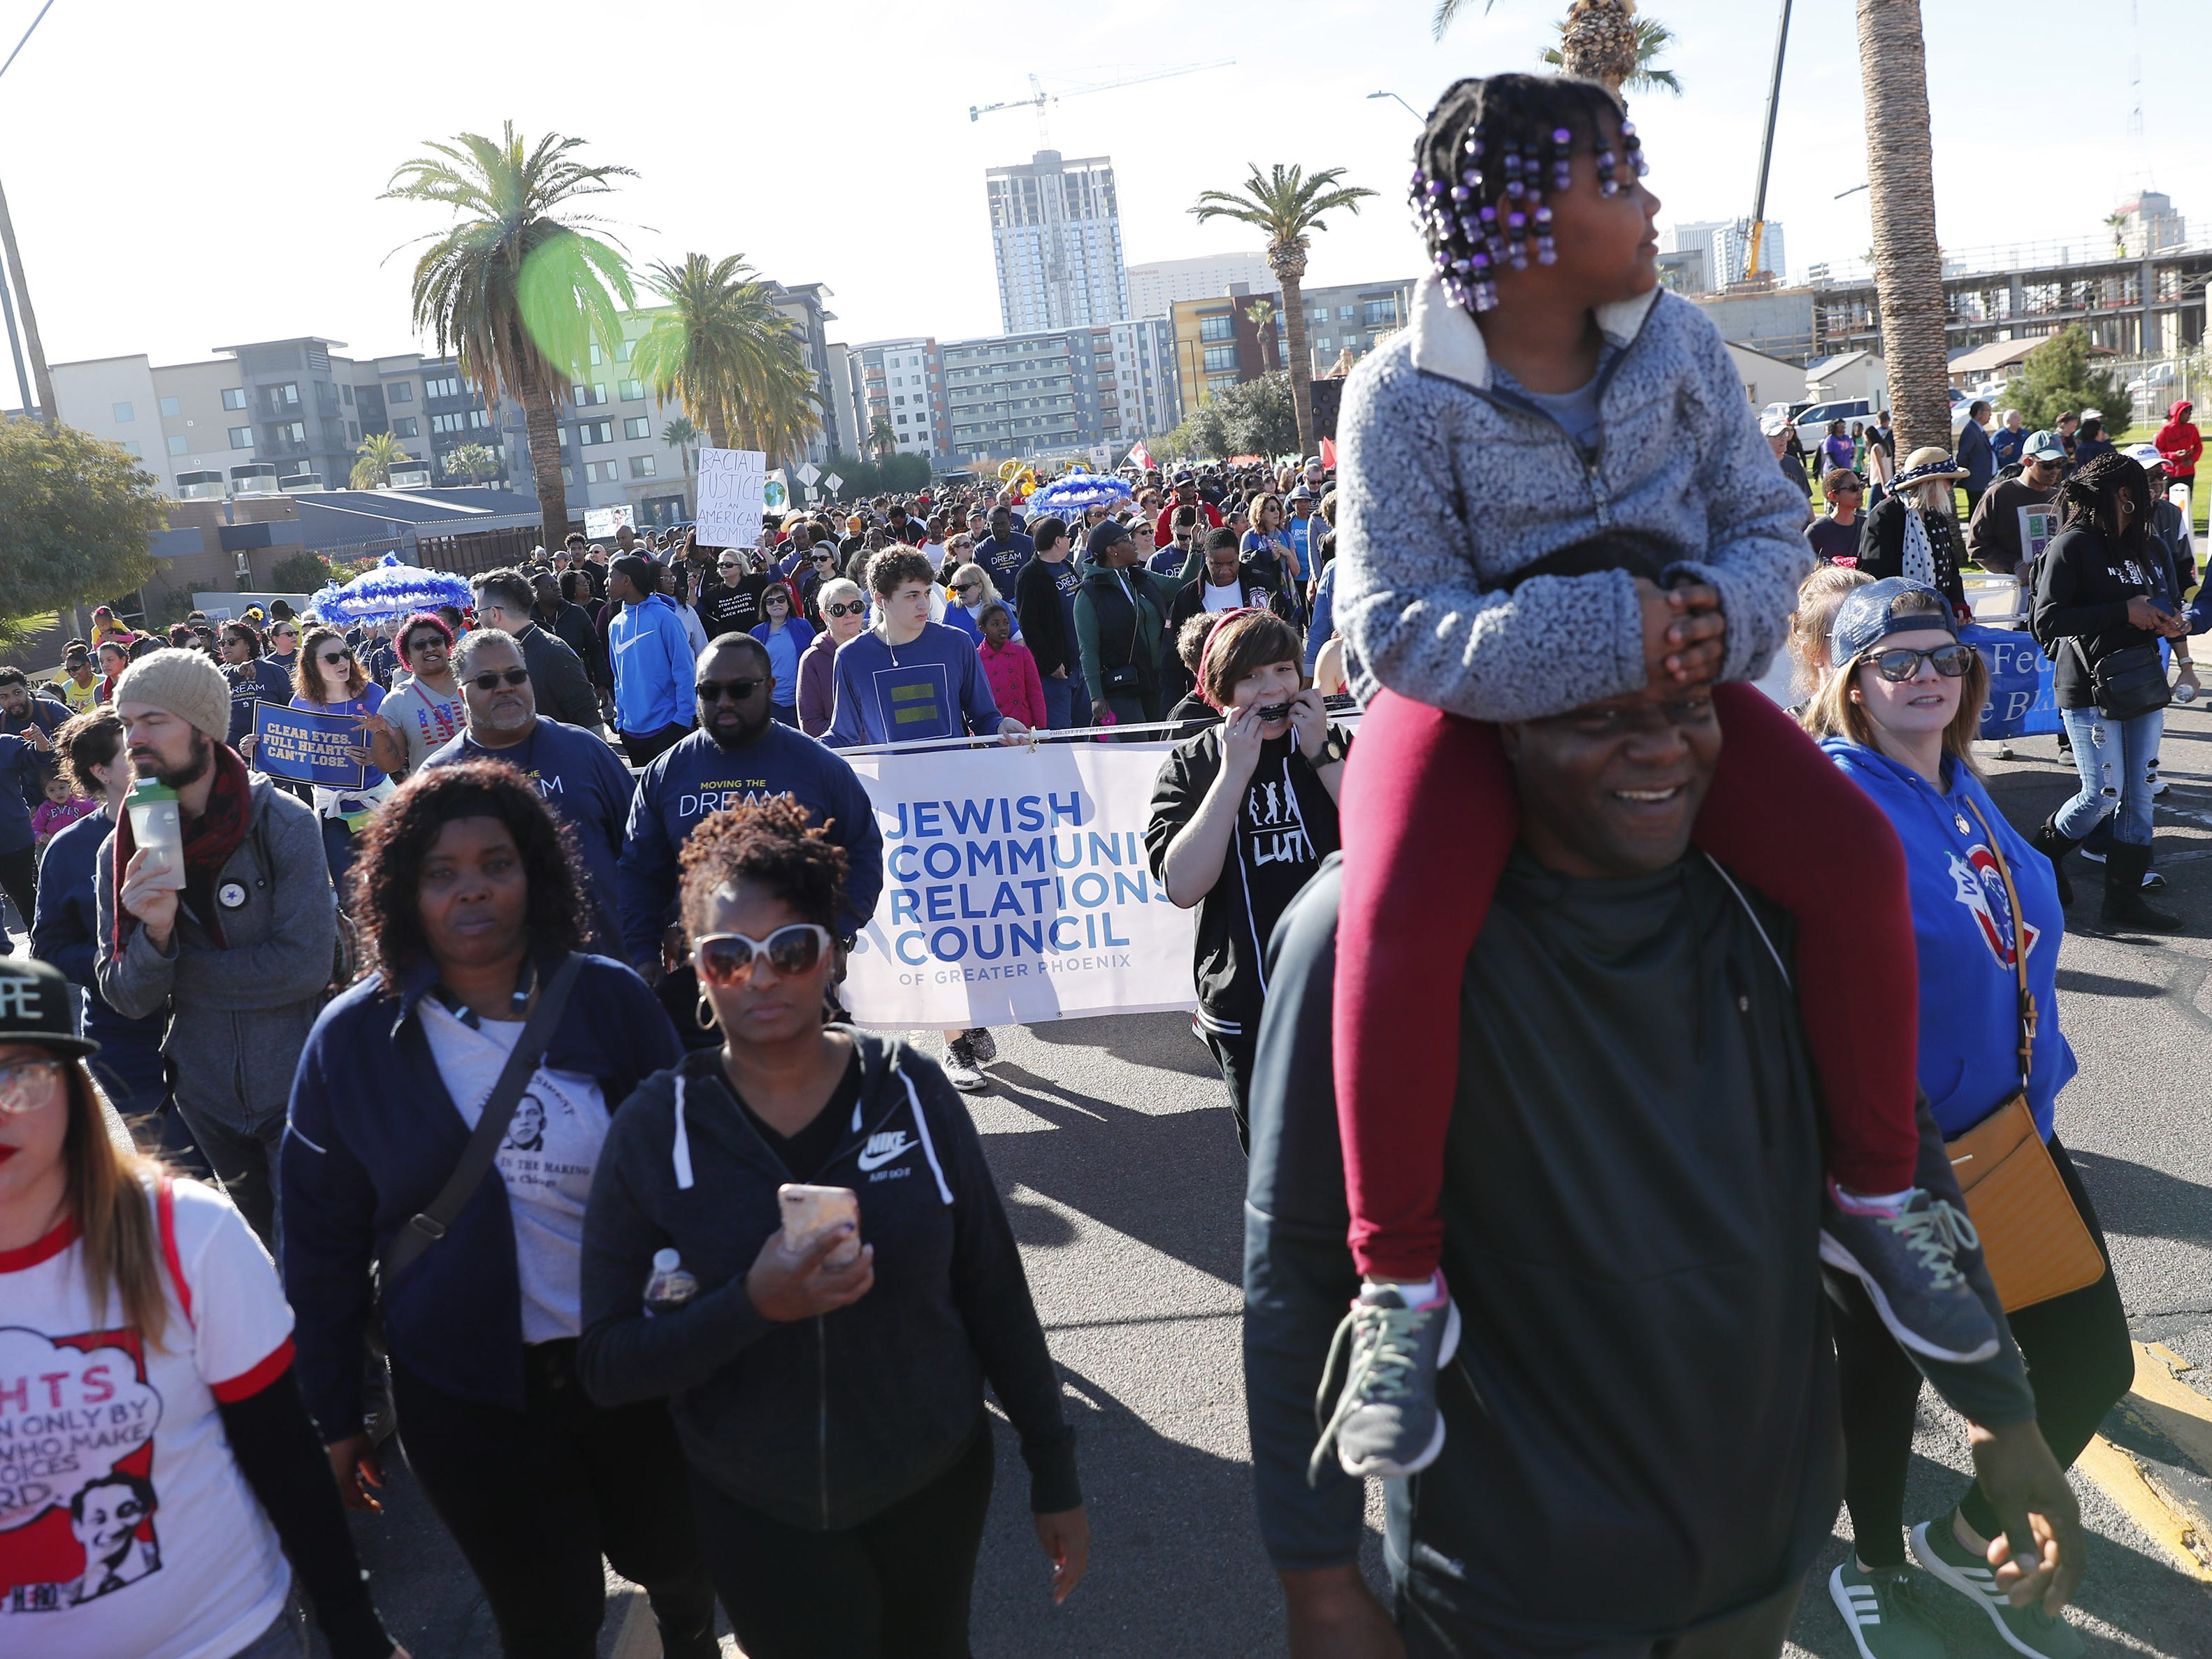 Thousands of people march honoring Dr. Martin Luther King in downtown Phoenix, Ariz. January 21, 2019. The march is symbolic of Dr. King's revolutionary 1968 march.